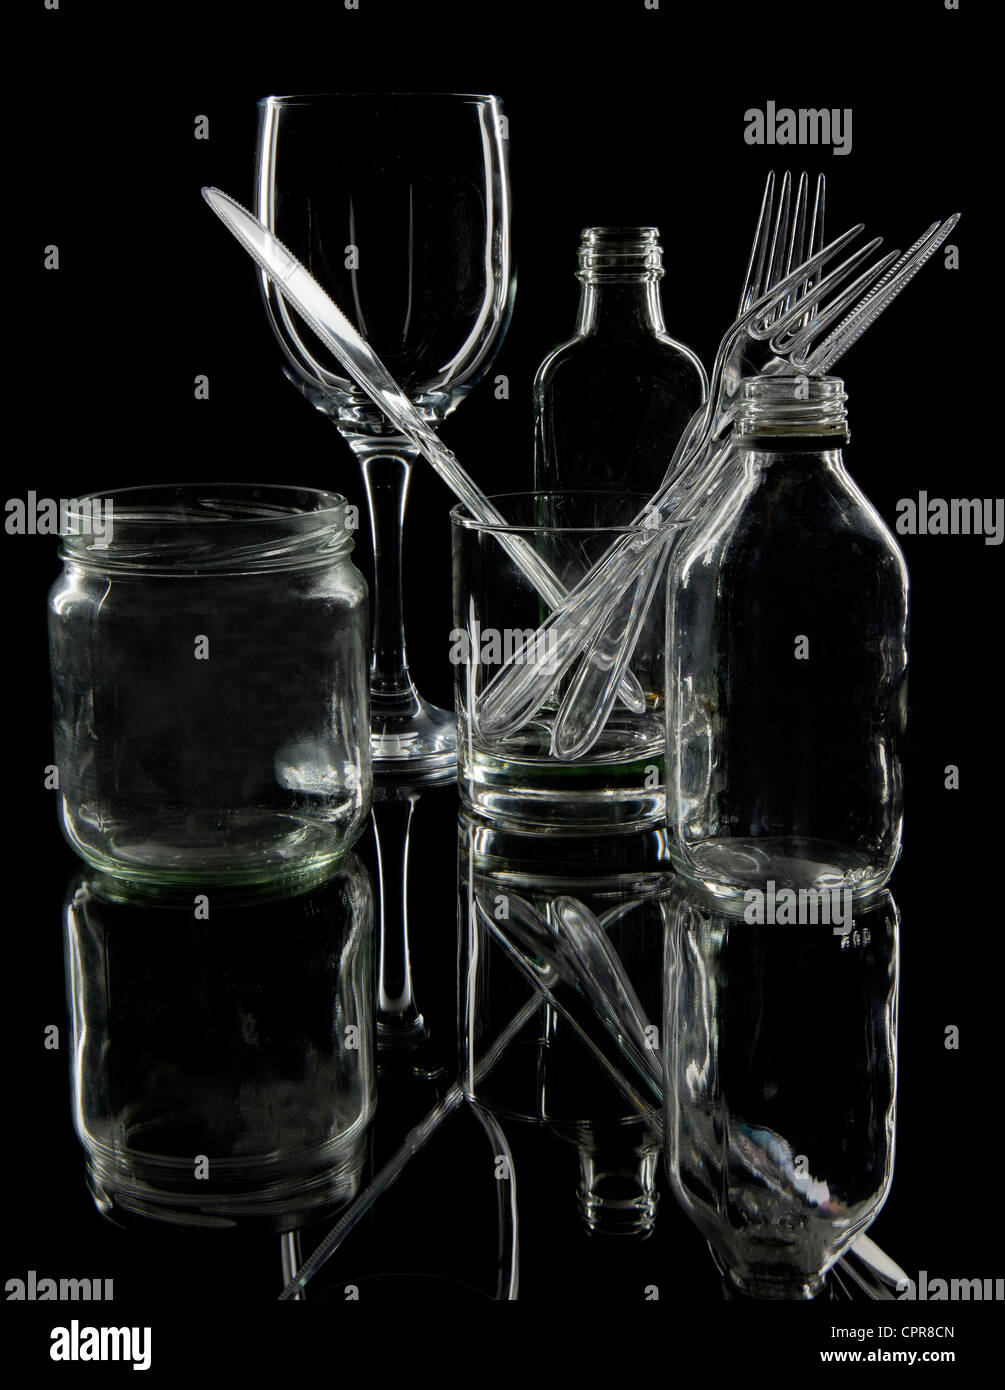 Jar stockfotos jar bilder alamy for Hintergrund kuche glas